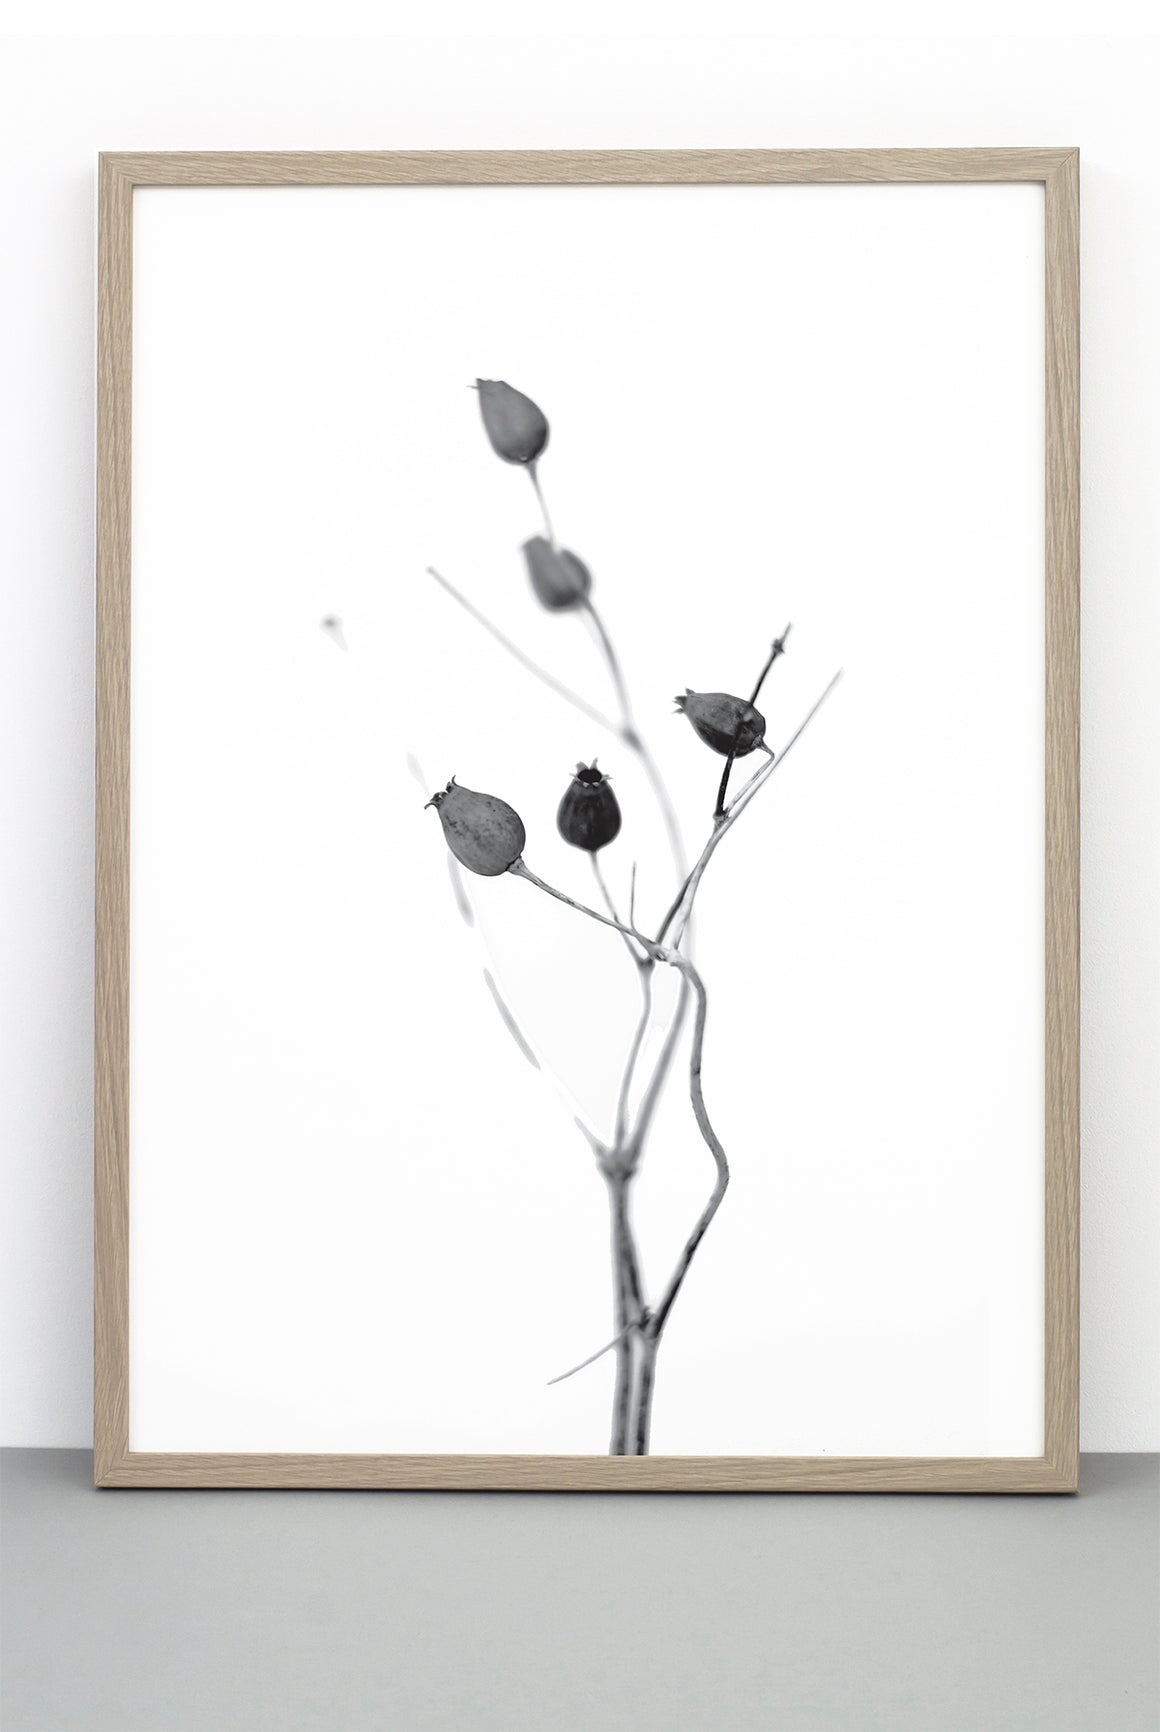 WHOLESALE SEED CAPSULE PRINT,  A BOTANICAL PHOTOGRAPHIC BLACK AND WHITE POSTER